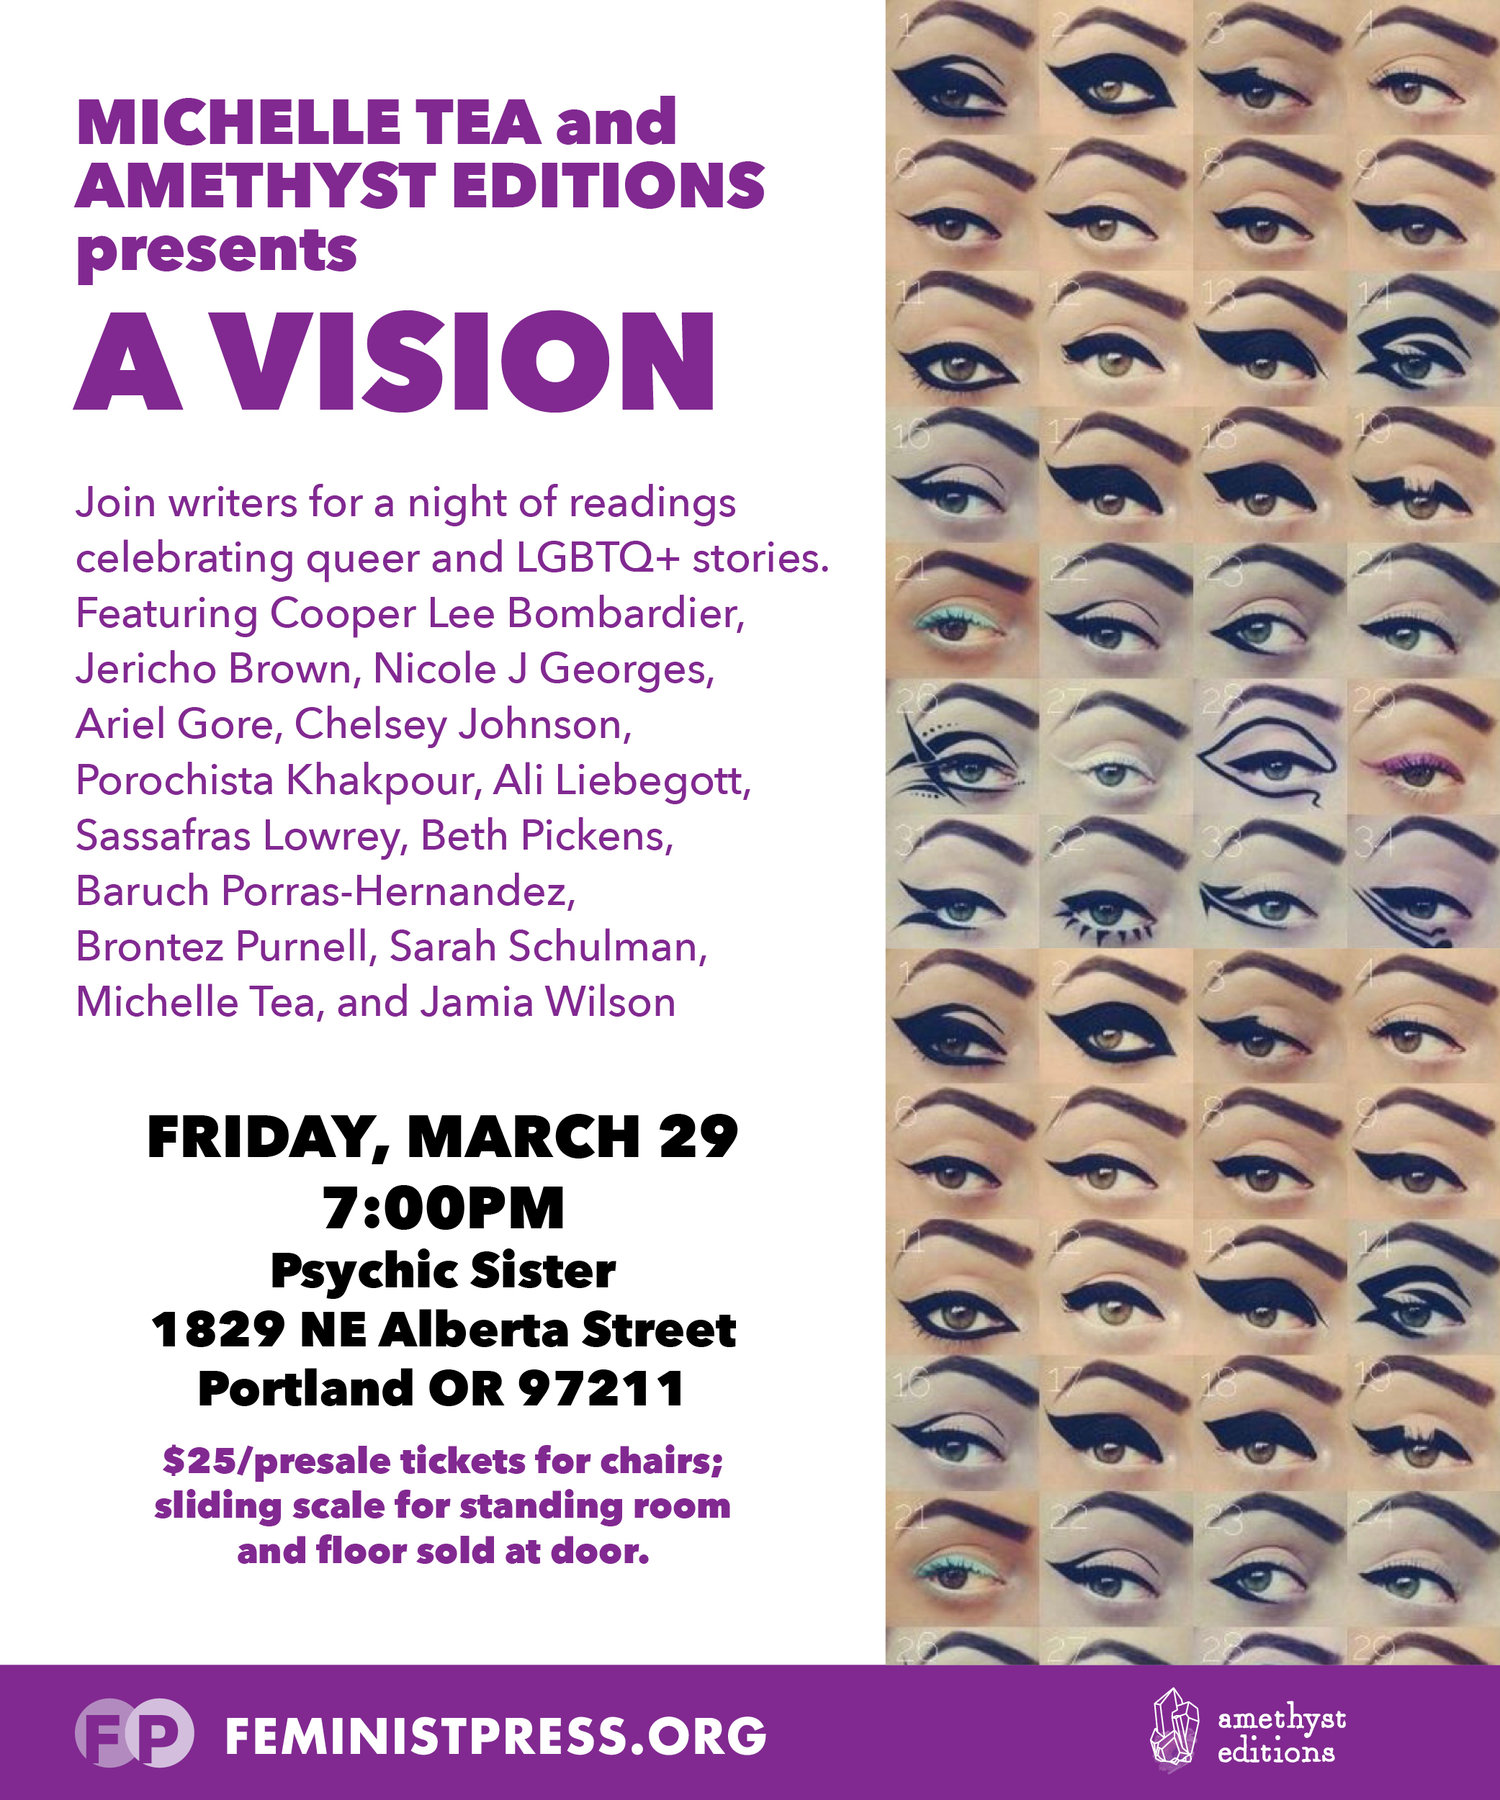 Michelle Tea and Amethyst Editions presents—A Vision